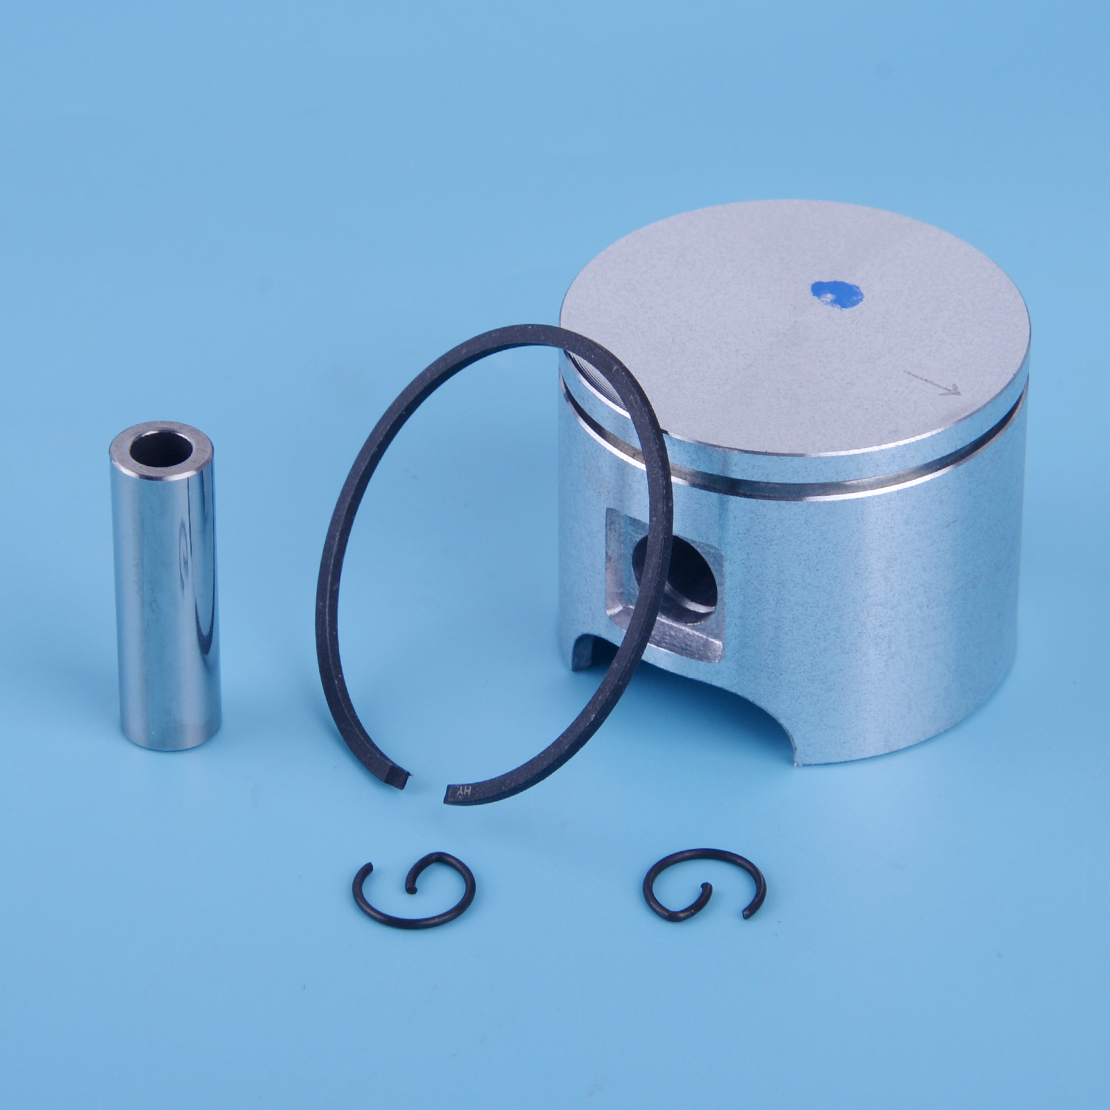 LETAOSK 46mm Piston And Pin Ring Circlips Cylinder Gasket Set Fit For Husqvarna 55 55 Rancher Chainsaw Accessories